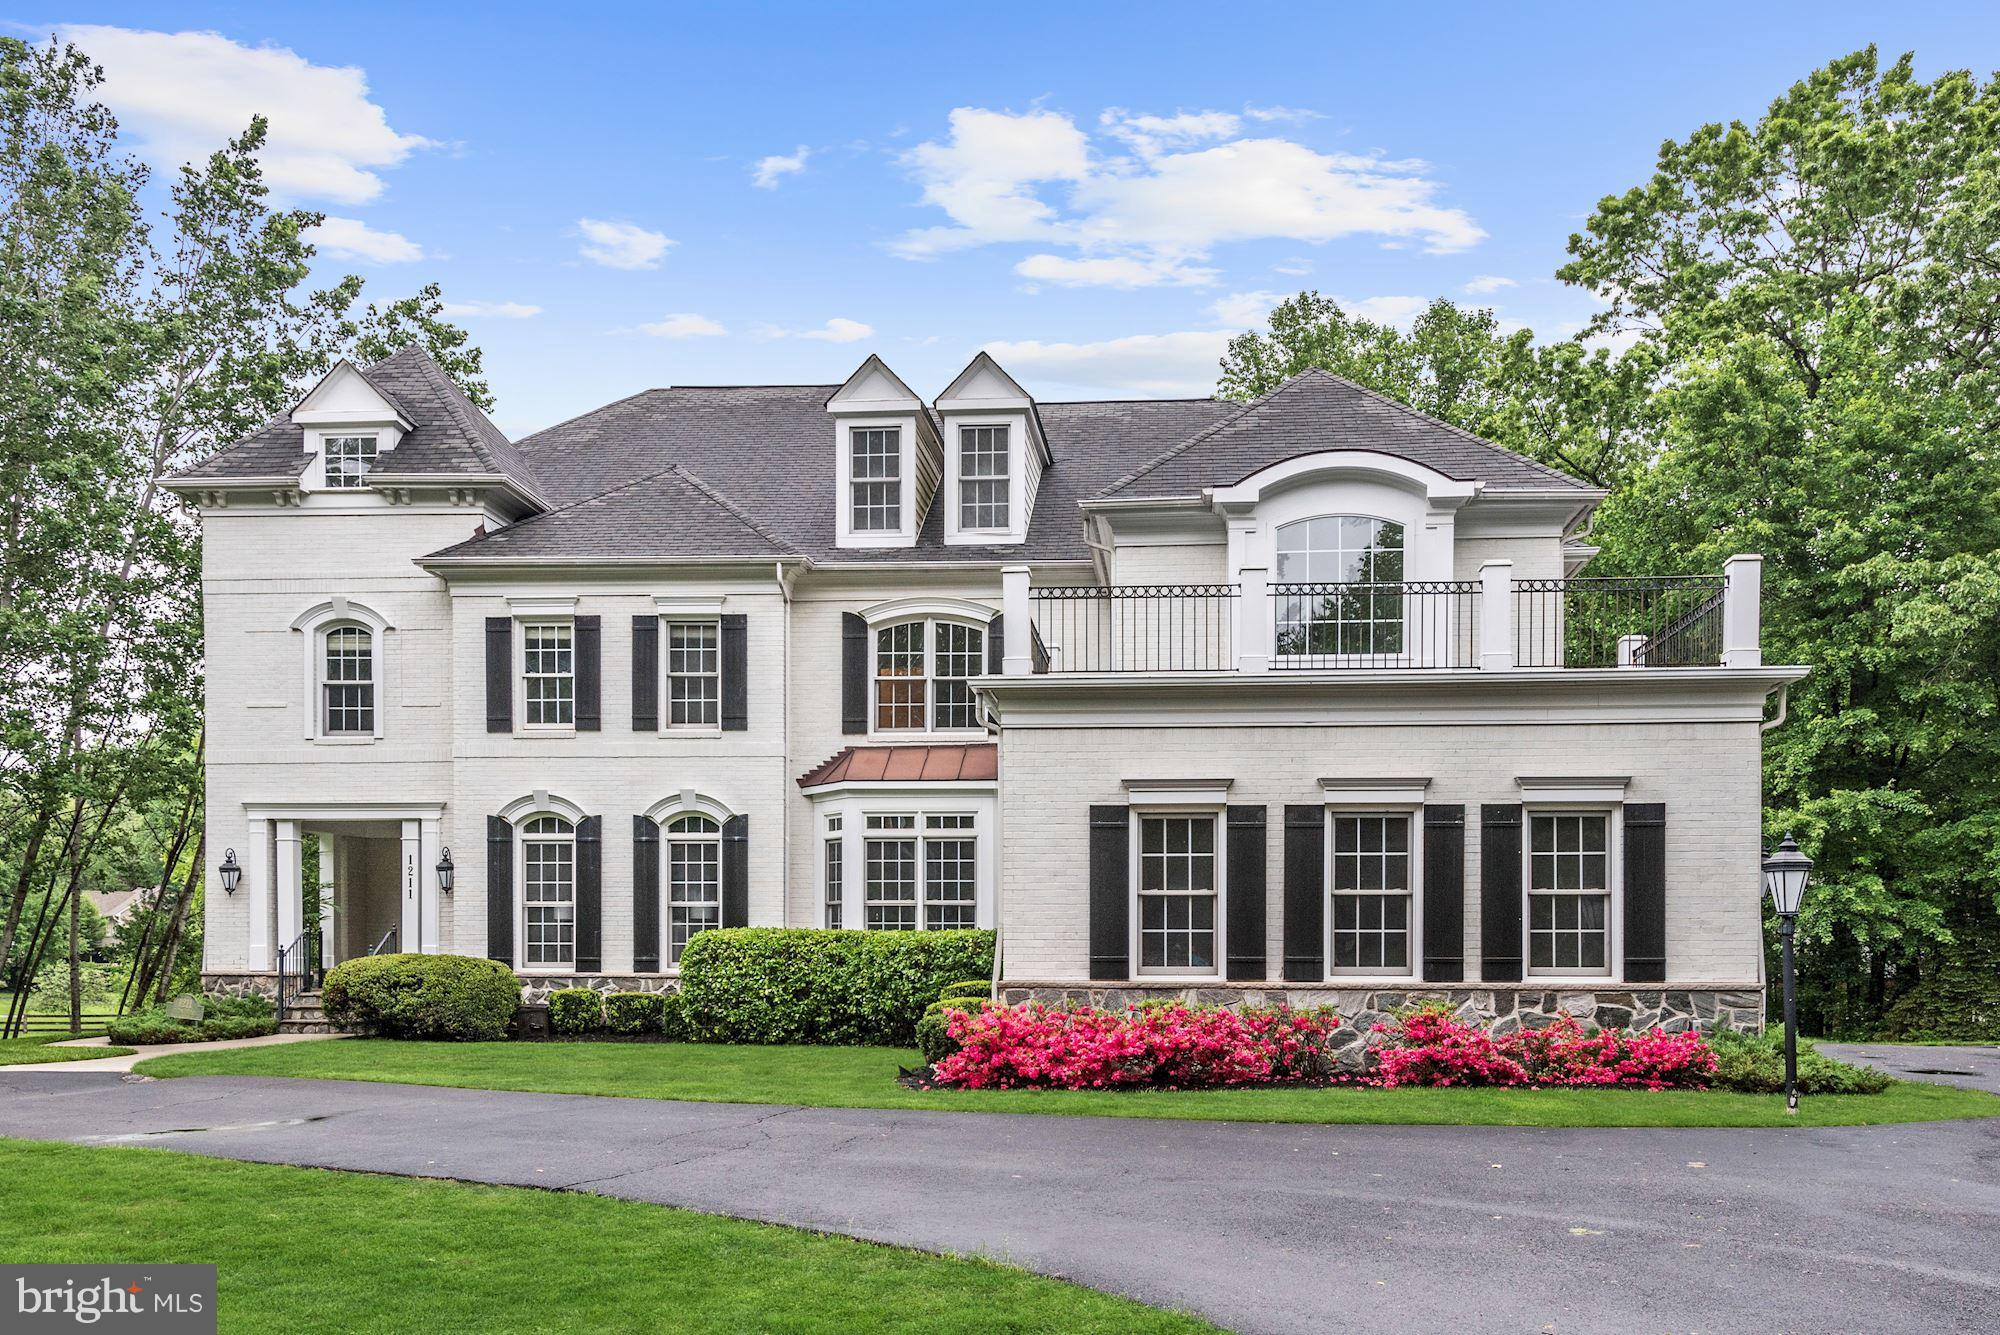 Stunning 5BR 5.5BA on 1.10 acre! Circular drive to covered porch. Foyer welcomes you w/grand circular staircase  LR w/stone wall & 2 story FR w/stone FP & 3 Palladian windows! Spacious gourmet kitchen w/island, gas FP, icemaker & wine cooler! DR w/Butler's pantry. Lux Mstr w/tray ceil, newly updtd bath & 2 cedar WIC. RR w/FP, fabulous full bar, gorgeous wine cellar & steamroom! Super location!